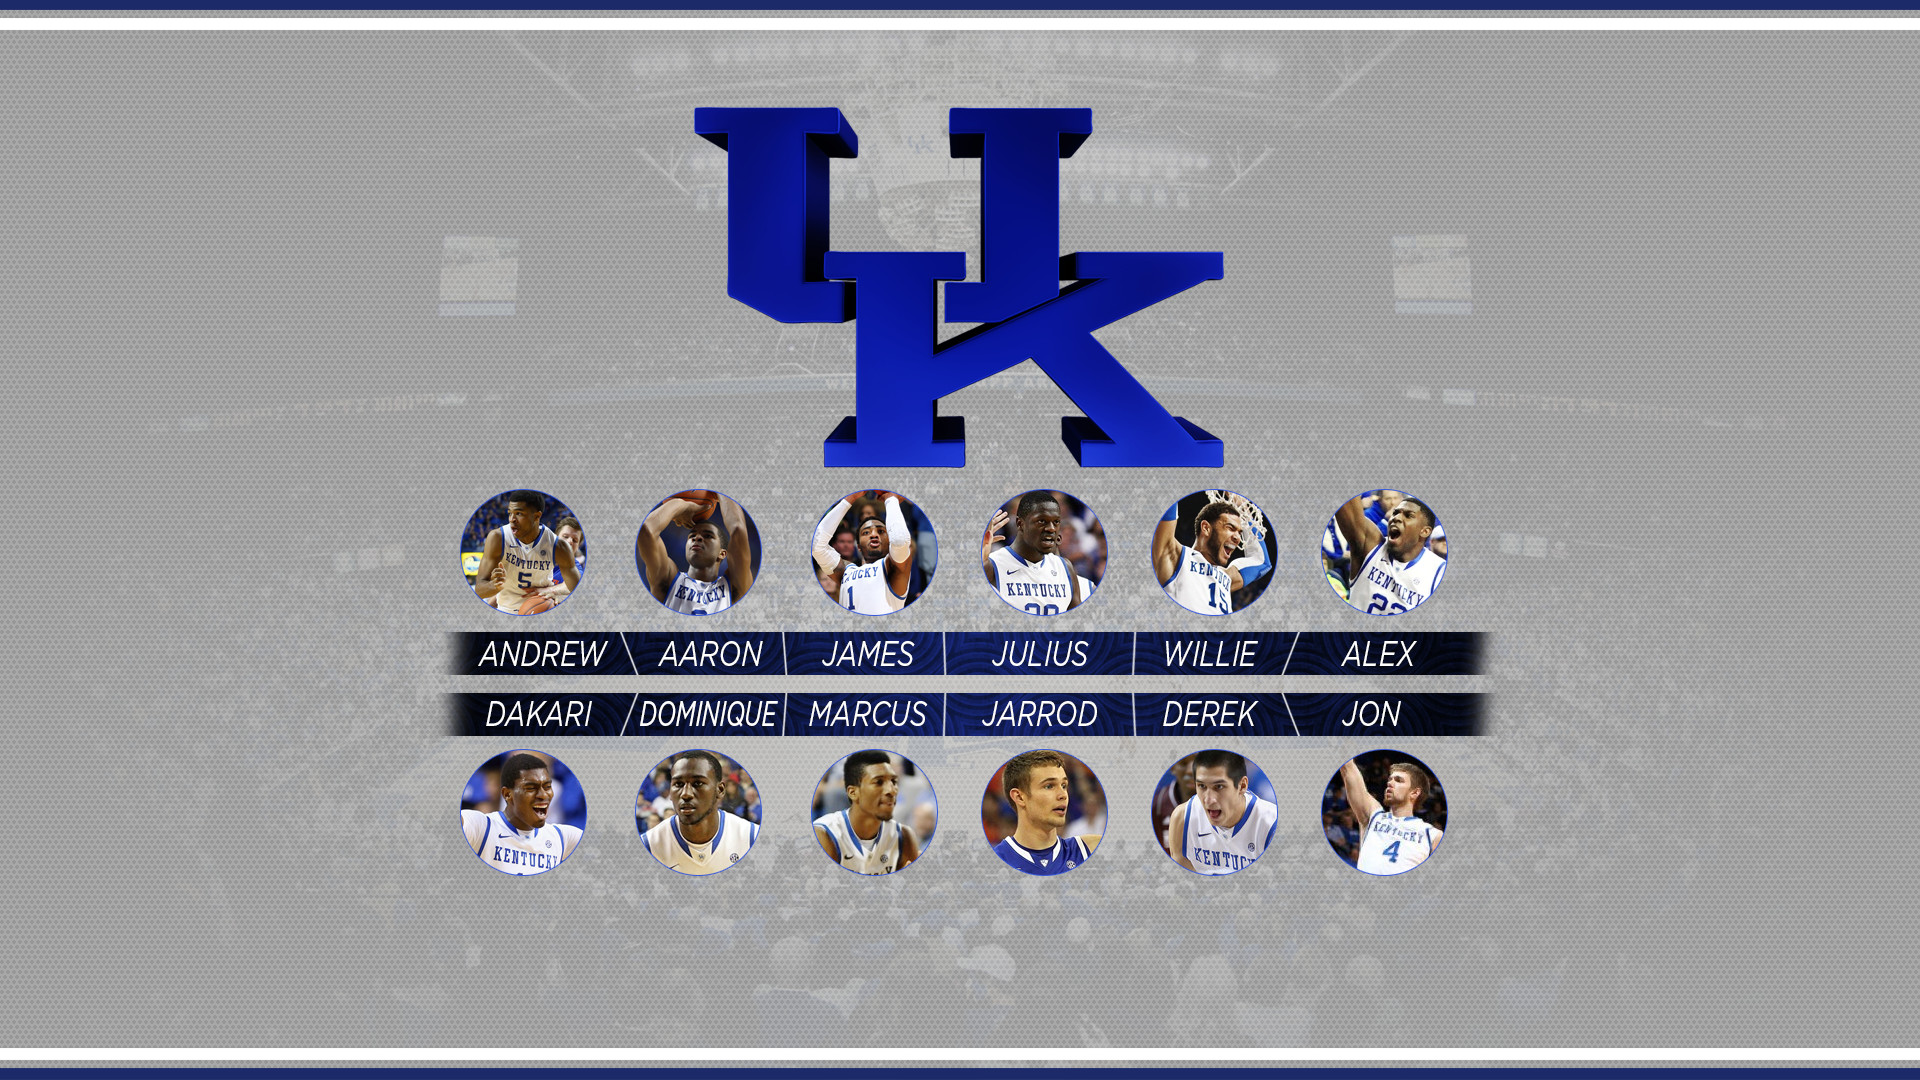 University of Kentucky Chrome Themes iOS Wallpapers Blogs for